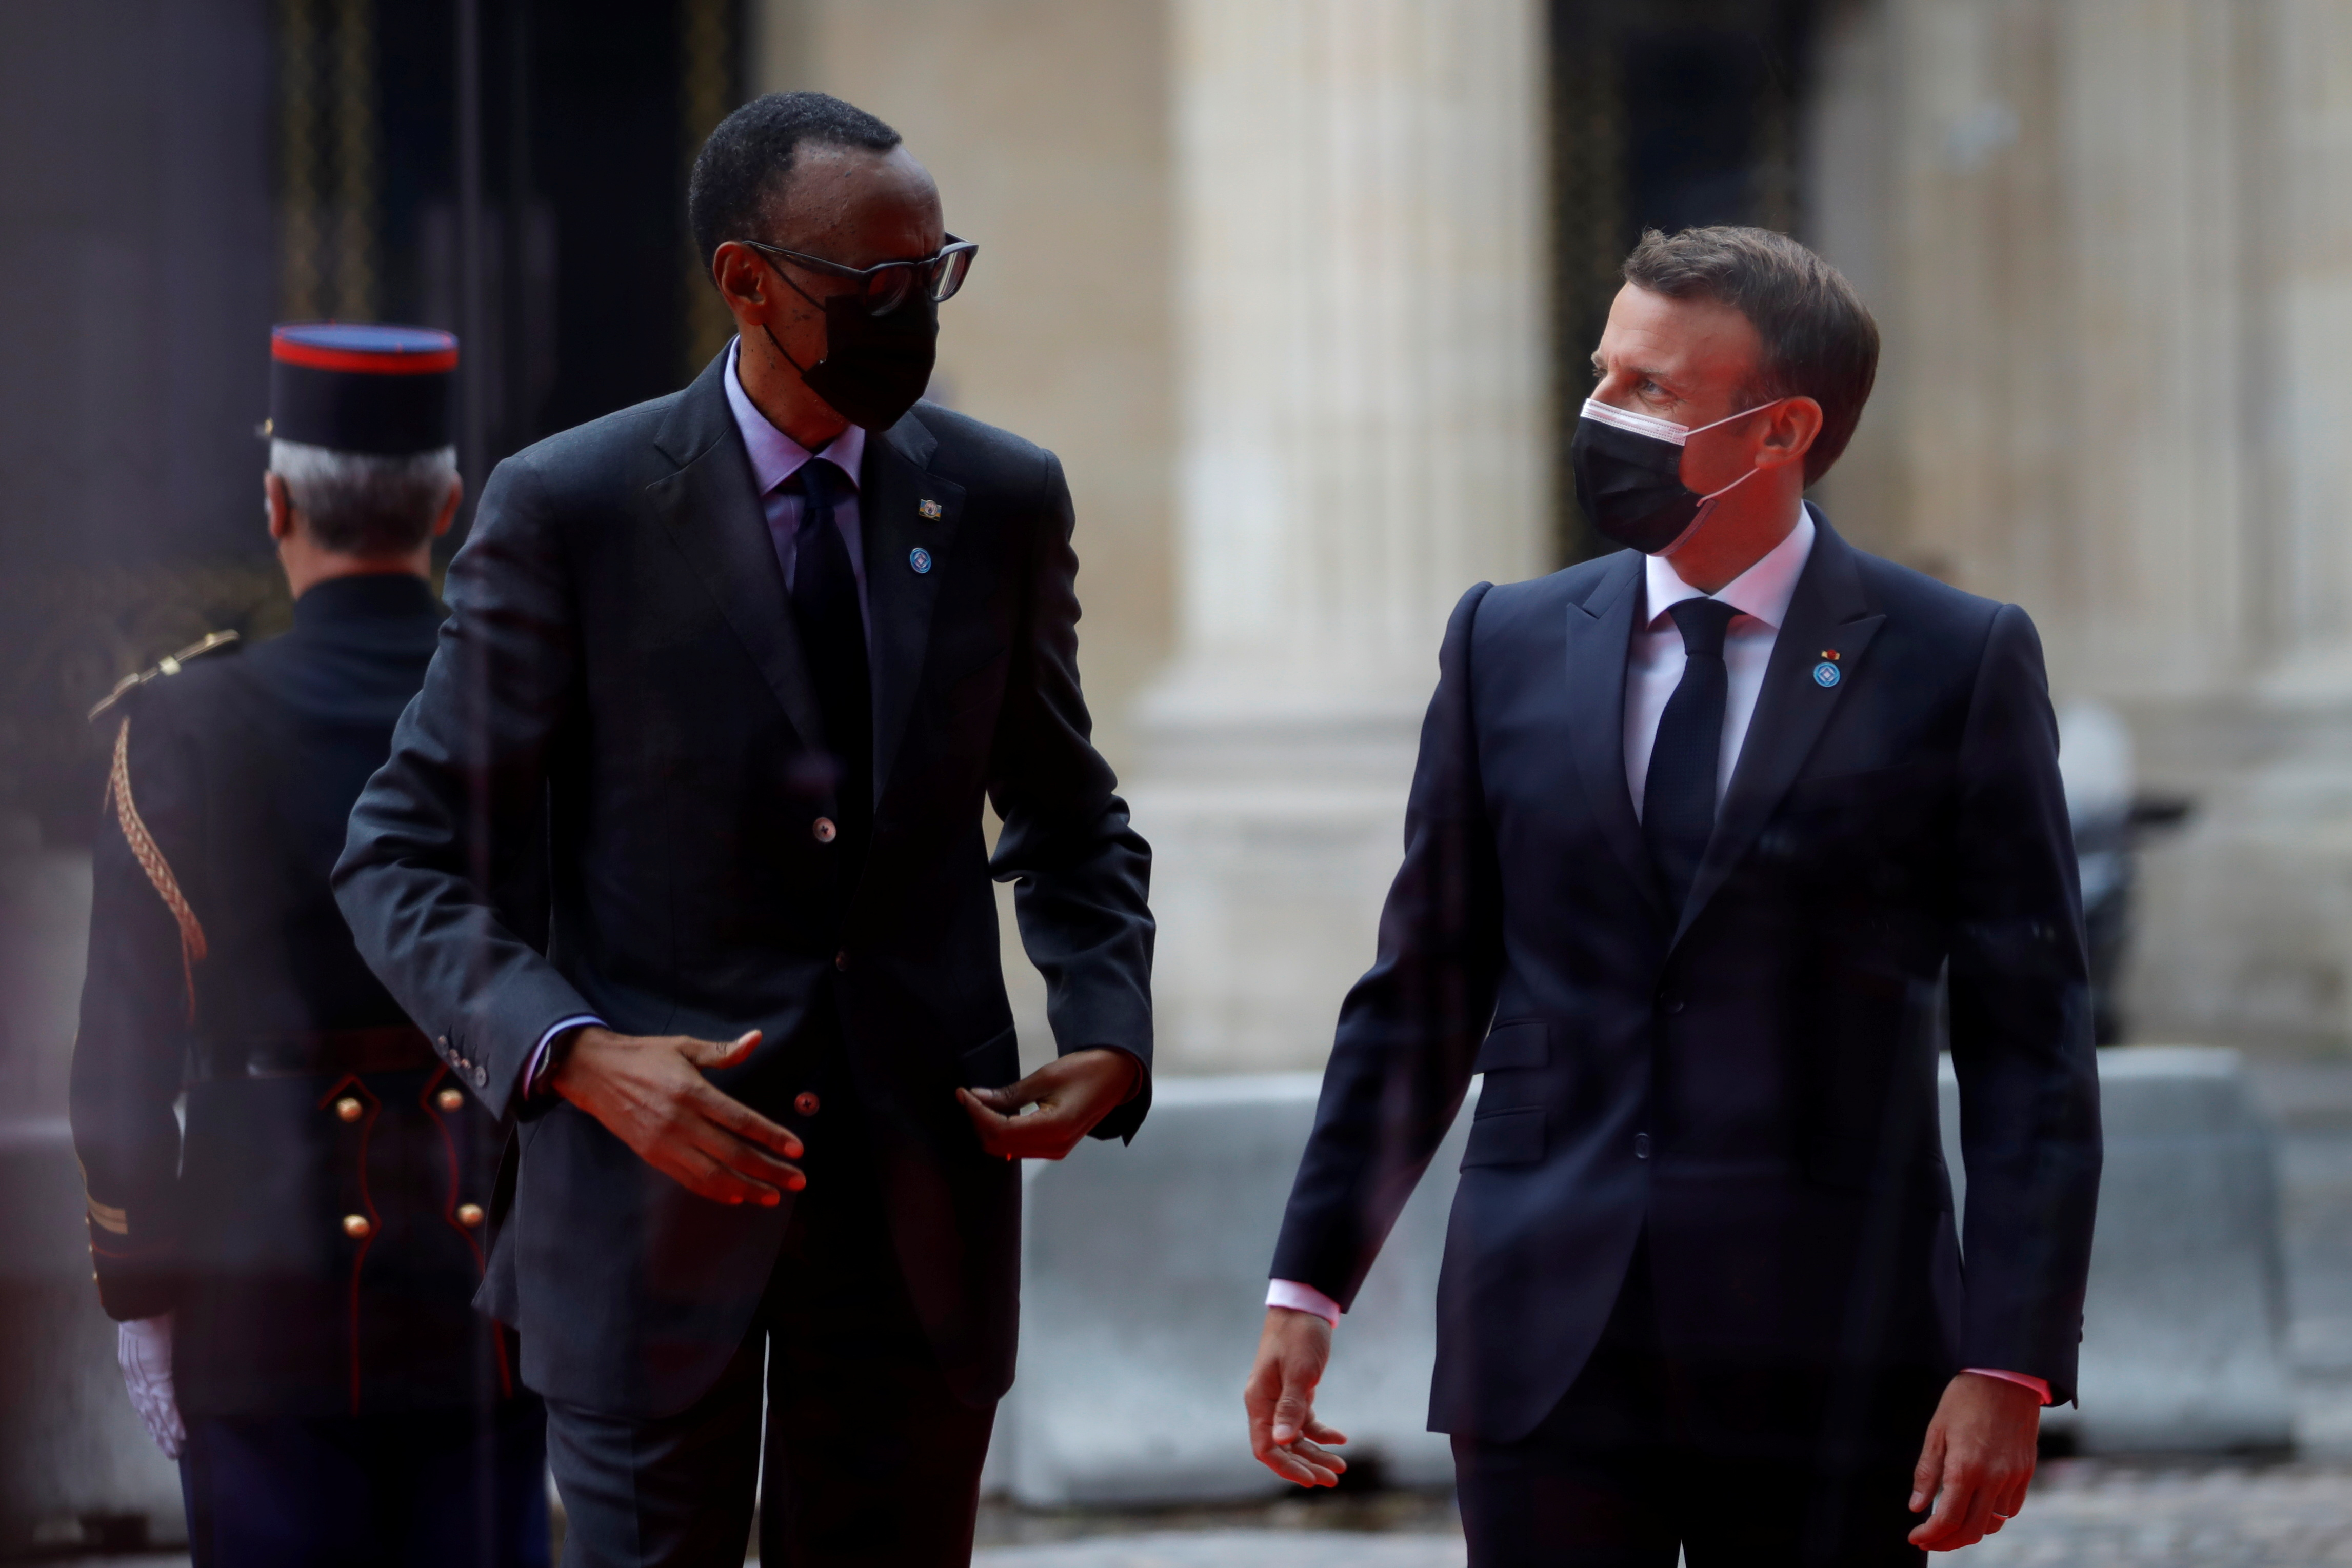 French President Emmanuel Macron welcomes Rwanda's President Paul Kagame as he arrives to attend the International Conference in support of Sudan at the Temporary Grand Palais in Paris, France, May 17, 2021. REUTERS/Sarah Meyssonnier